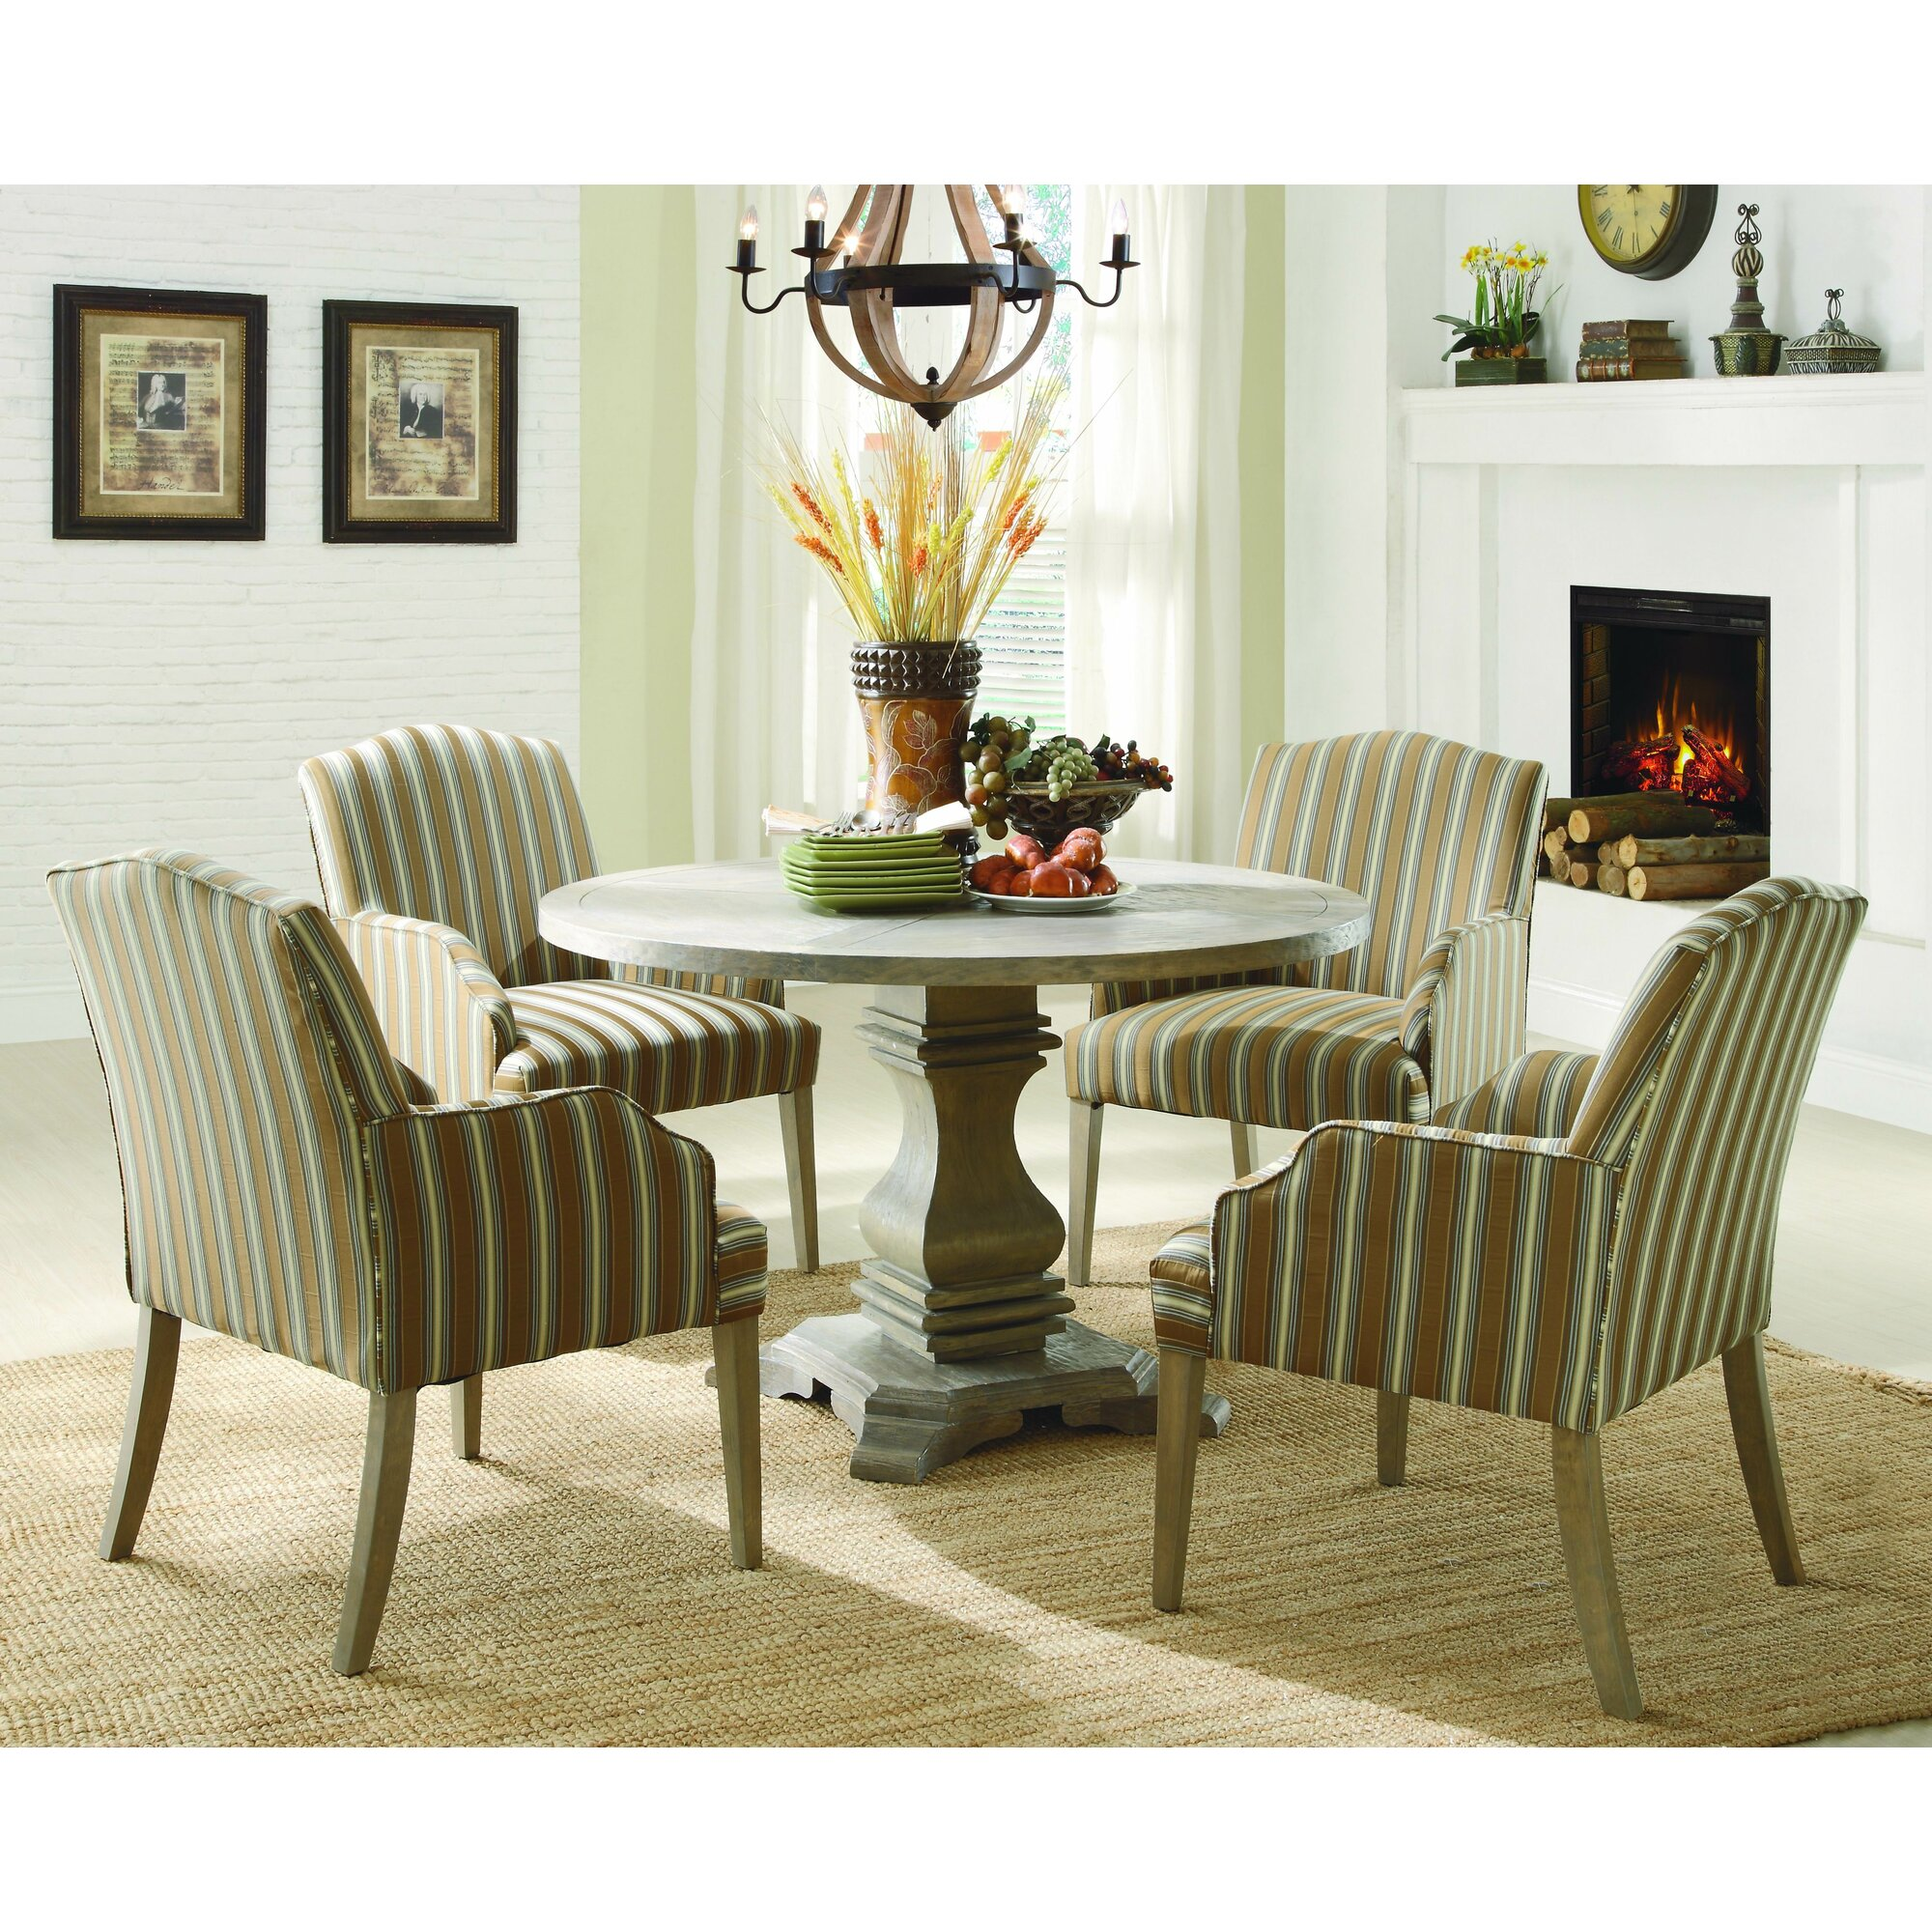 Homelegance Euro Casual Dining Table & Reviews | Wayfair